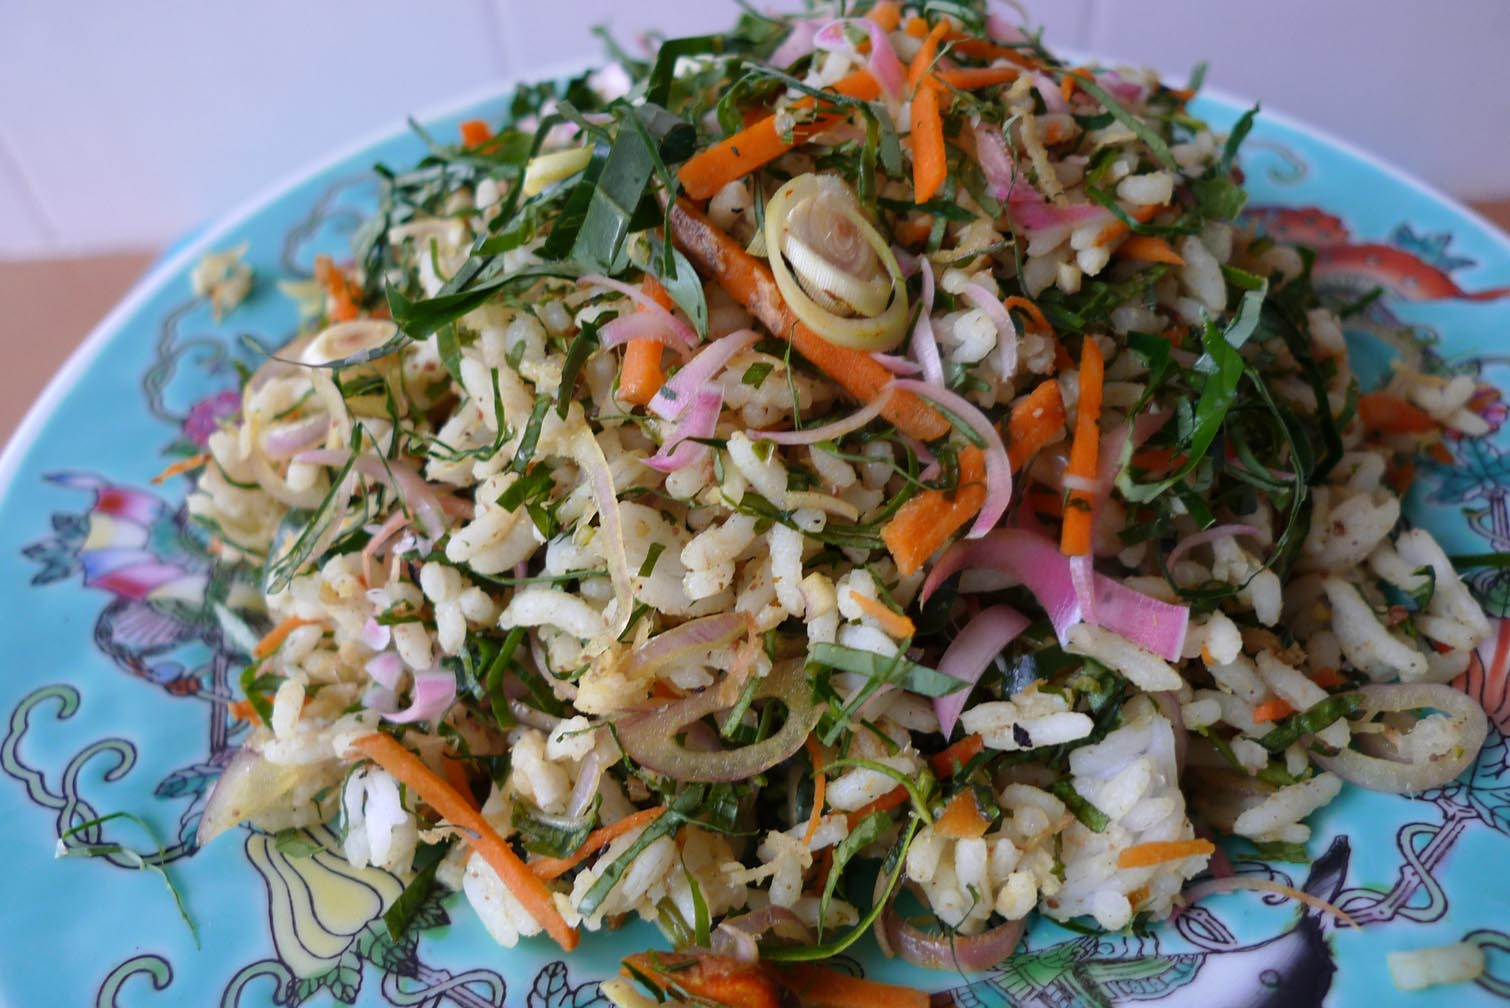 the uses of ulam Nasi ulam (herb rice salad) with aromatic herbs, richness of the toasted coconuts and pungent spices an incredibly healthy & addictive dish.